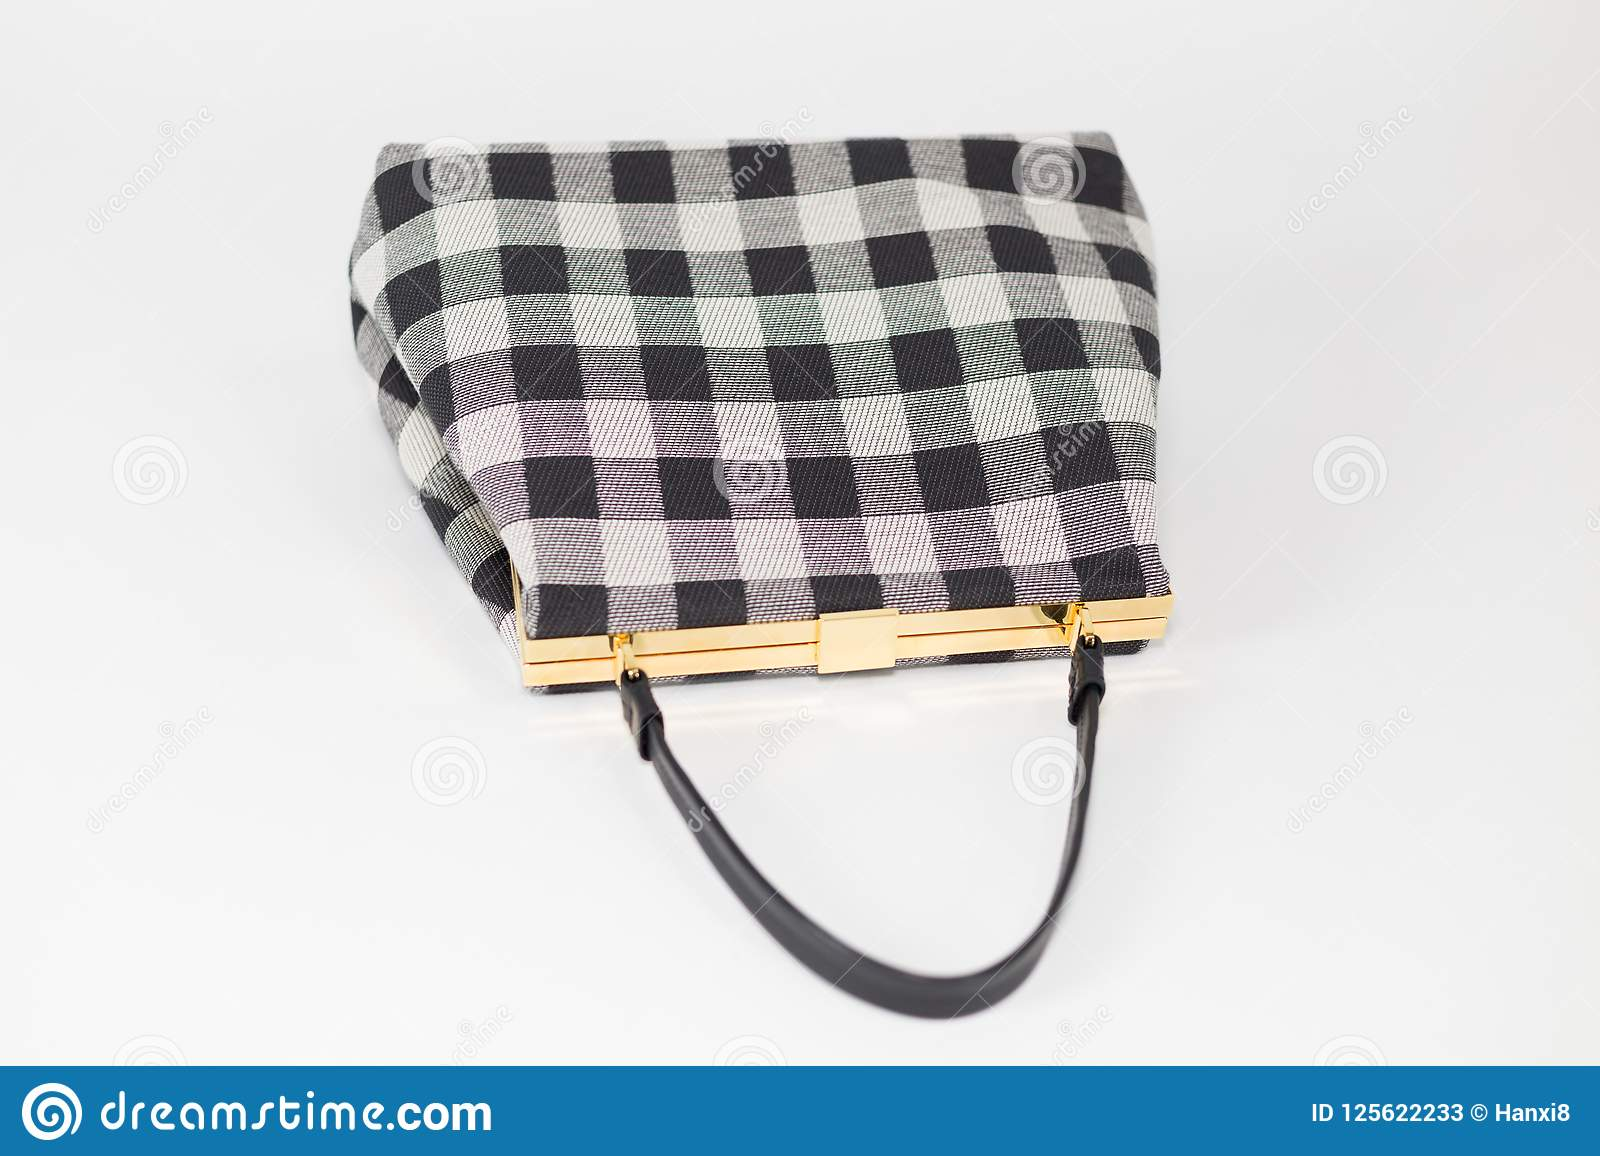 24b67f75073a Black And White Plaid Checkered Pattern Handbag Closeup Stock ...